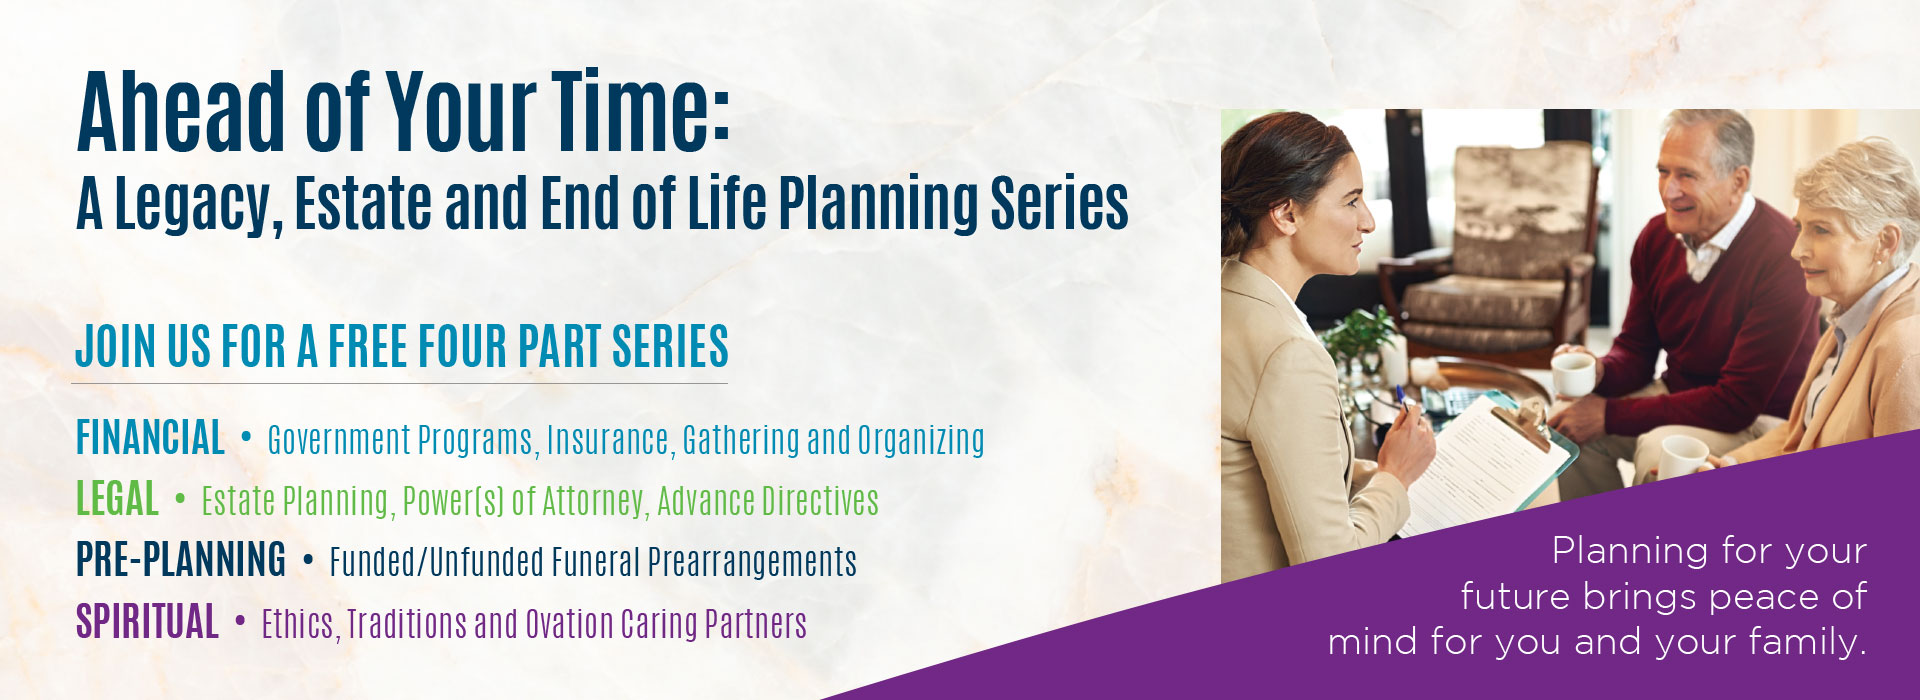 Event: Ahead of Your Time - A Legacy, Estate and End of Life Planning Series